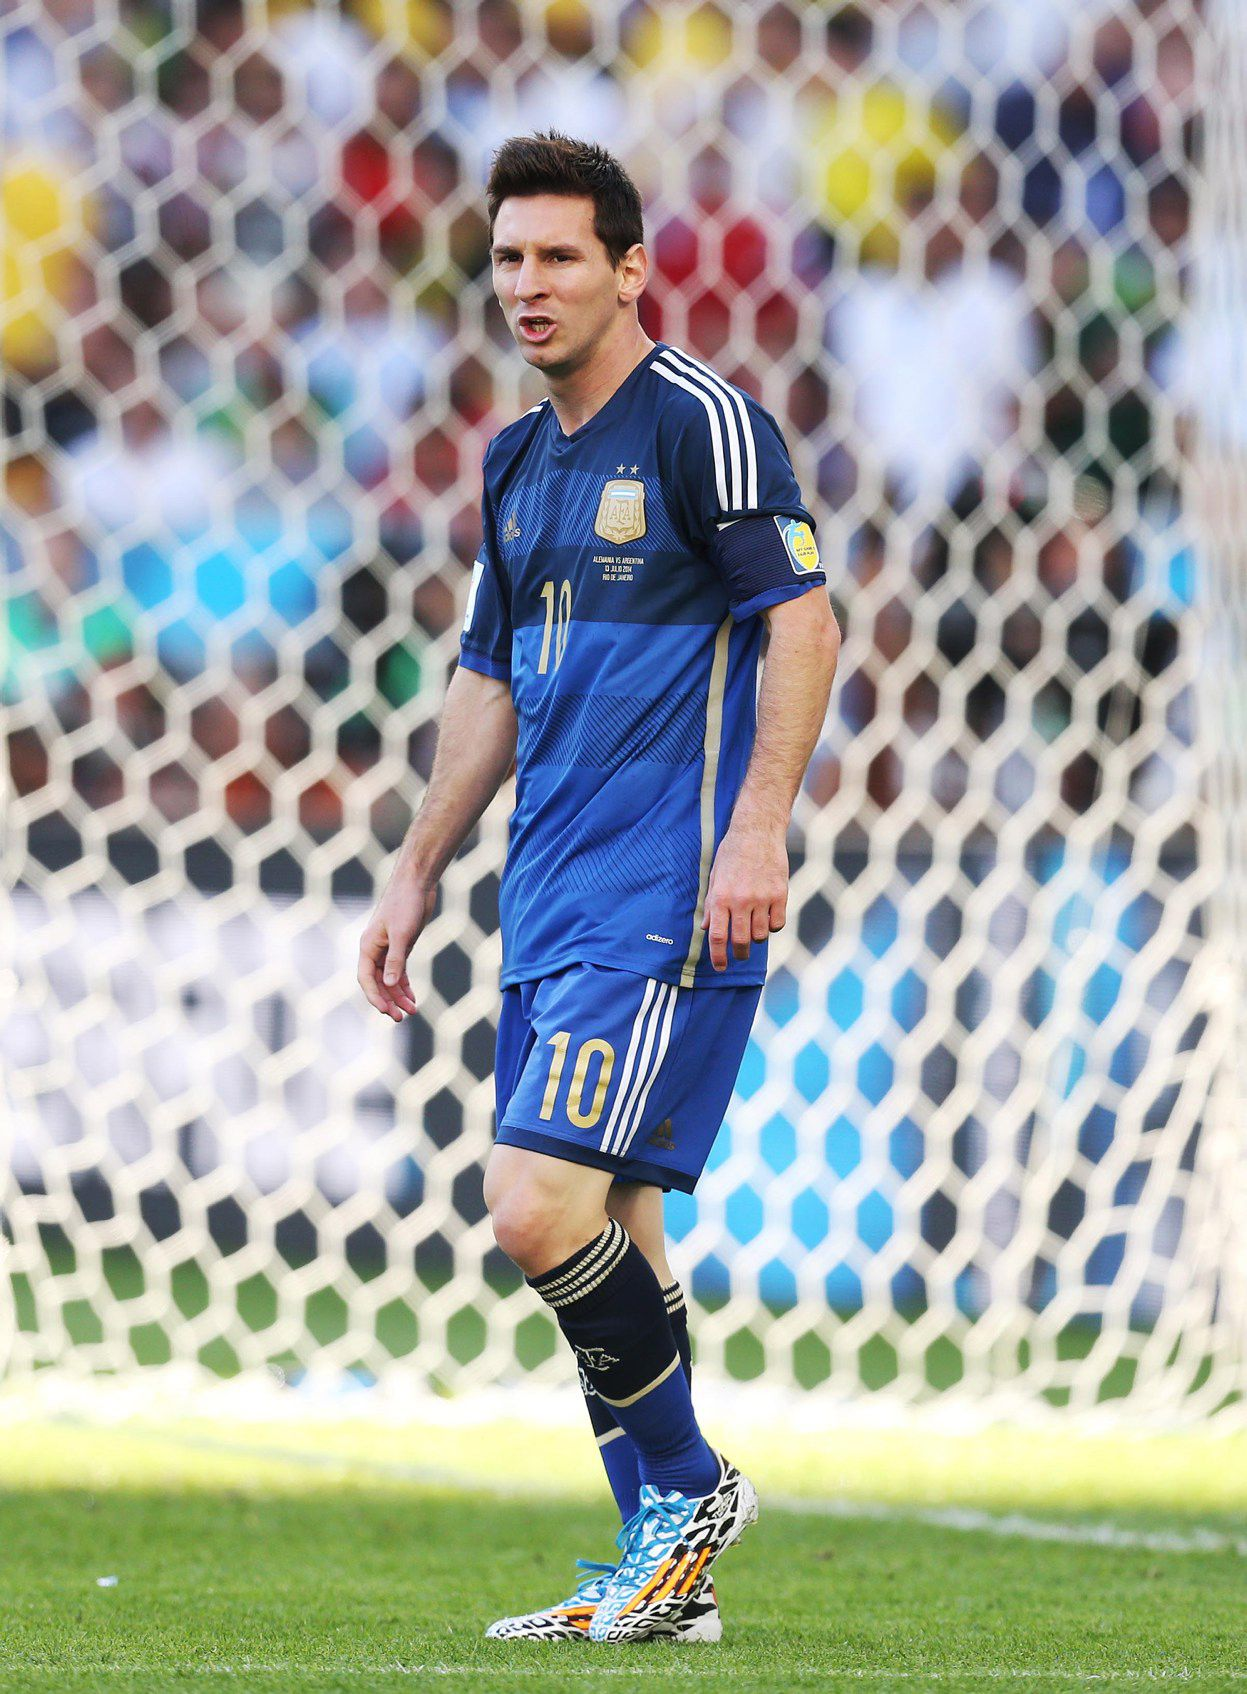 World Cup Final Argentina Vs Germany July 13 2014 Wc2014 Worldcup Worldcup2014 Messi Lionel Messi Cristiano Ronaldo Lionel Messi Soccer Girl Problems